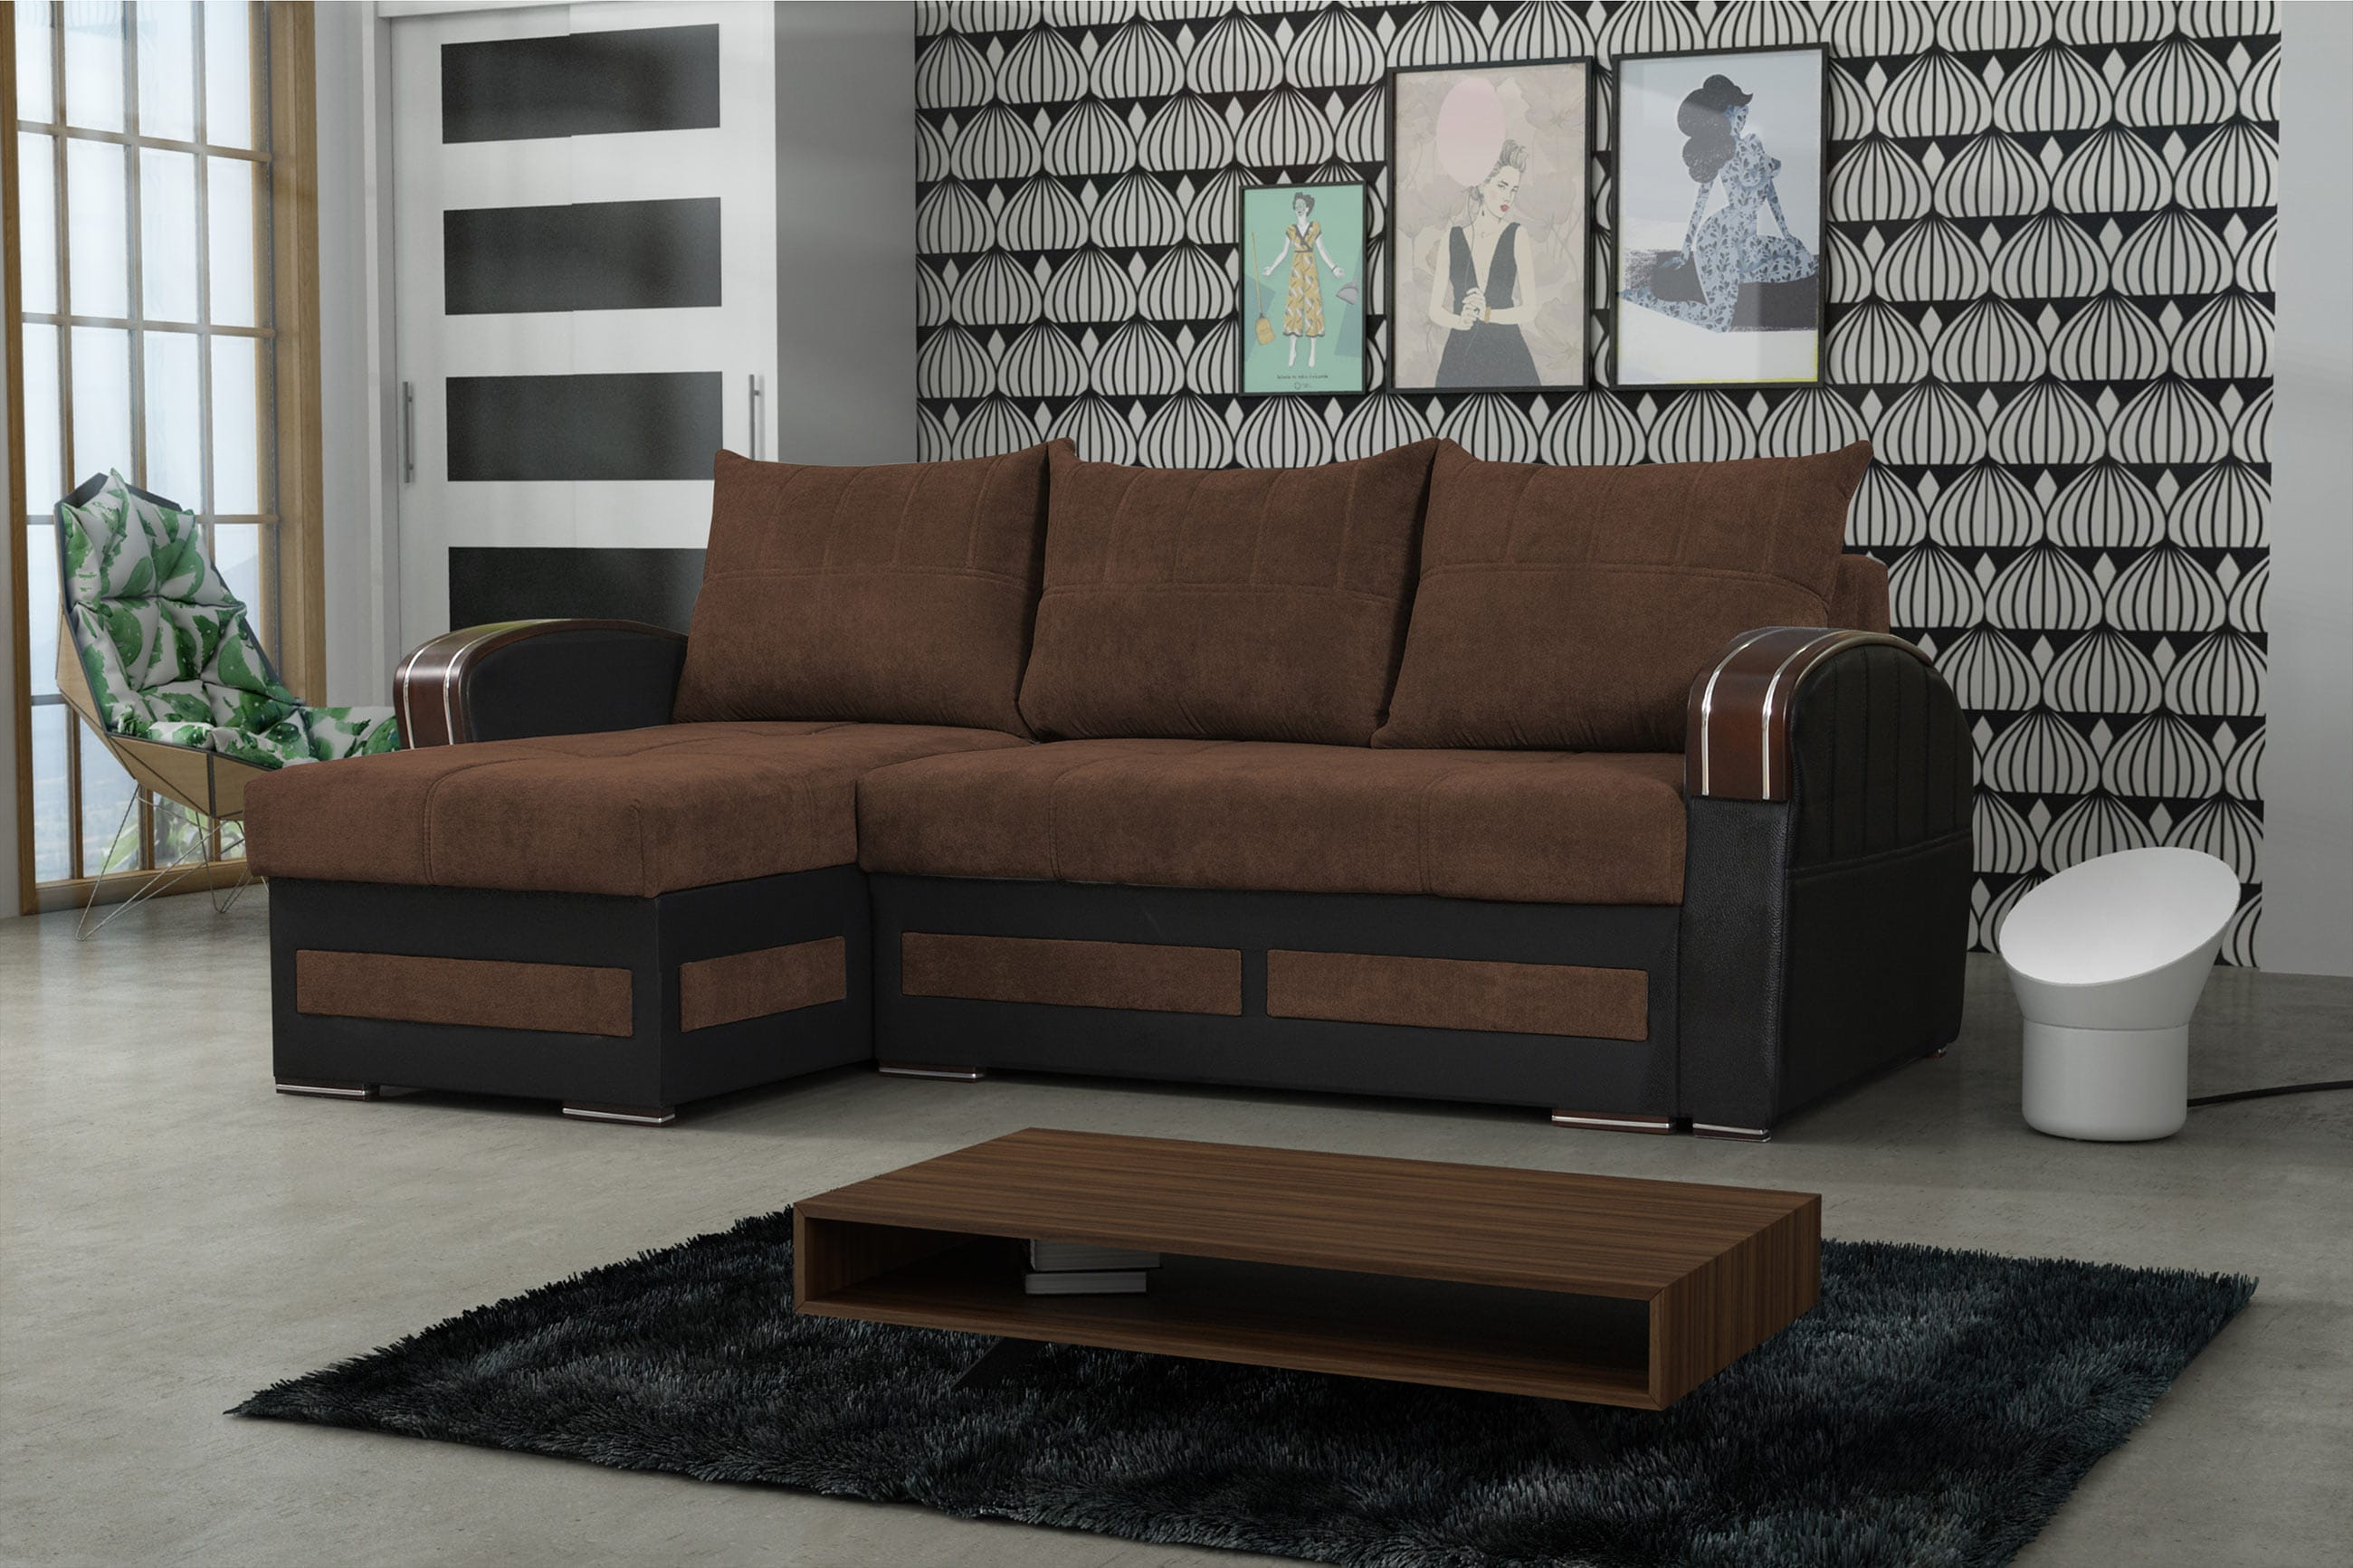 Tommy Brown Sectional Sofa Sleeper by Skyler Designs